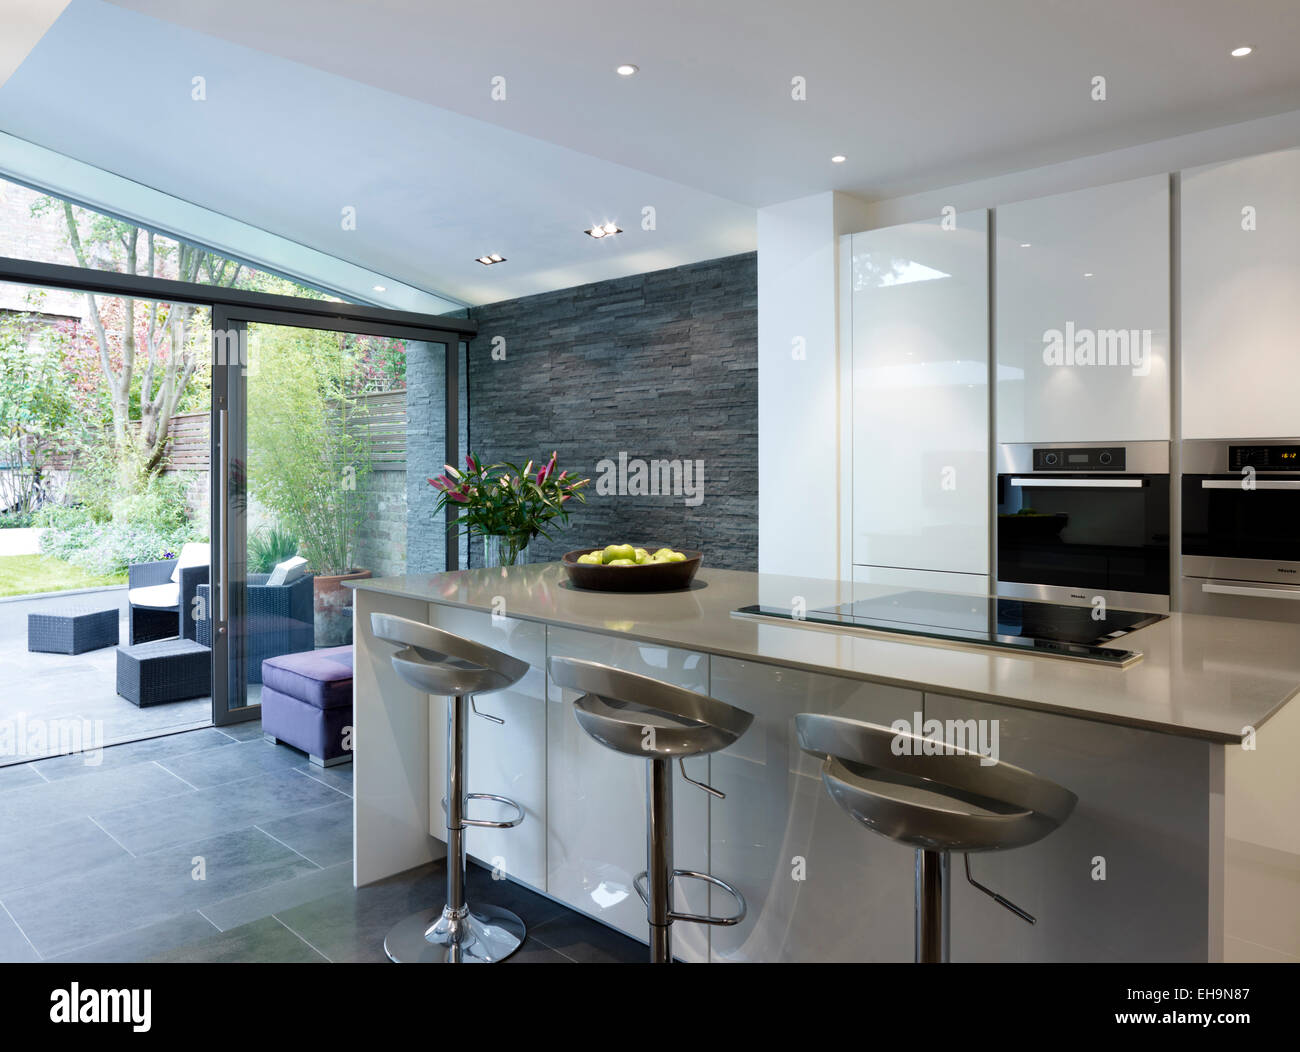 Breakfast bar with stools in open plan kitchen and living area in Stock Photo 79504887  Alamy